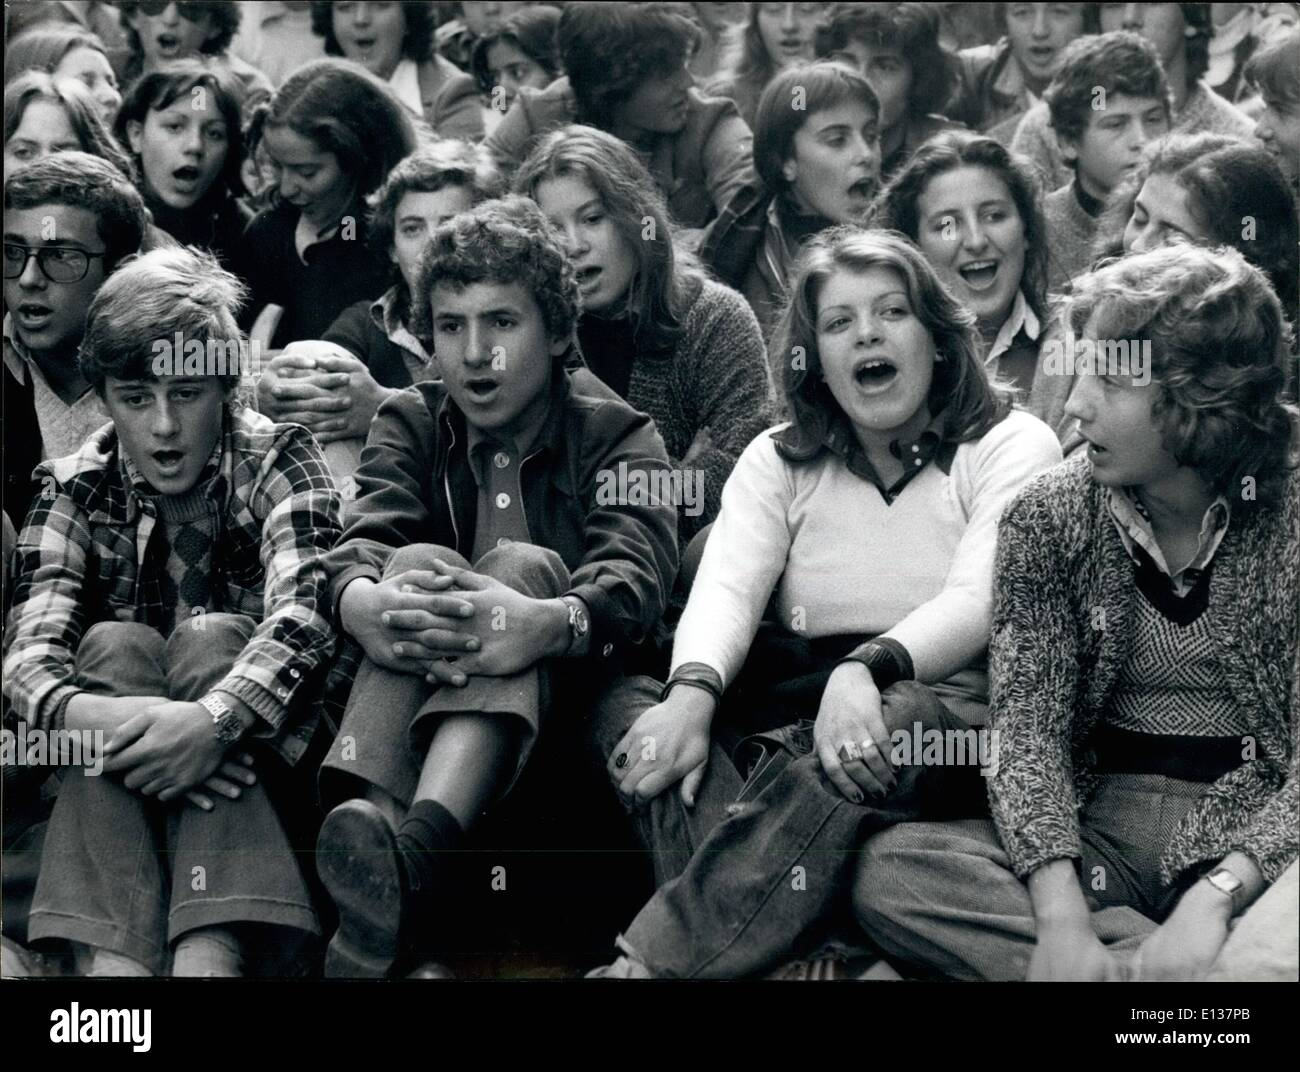 Feb. 29, 2012 - Rome, Nov. 11, 1975. Are they singing Celeste Aida ???? No, they are claiming the attention of the government about the lack of the classrooms the Roman school. - Stock Image